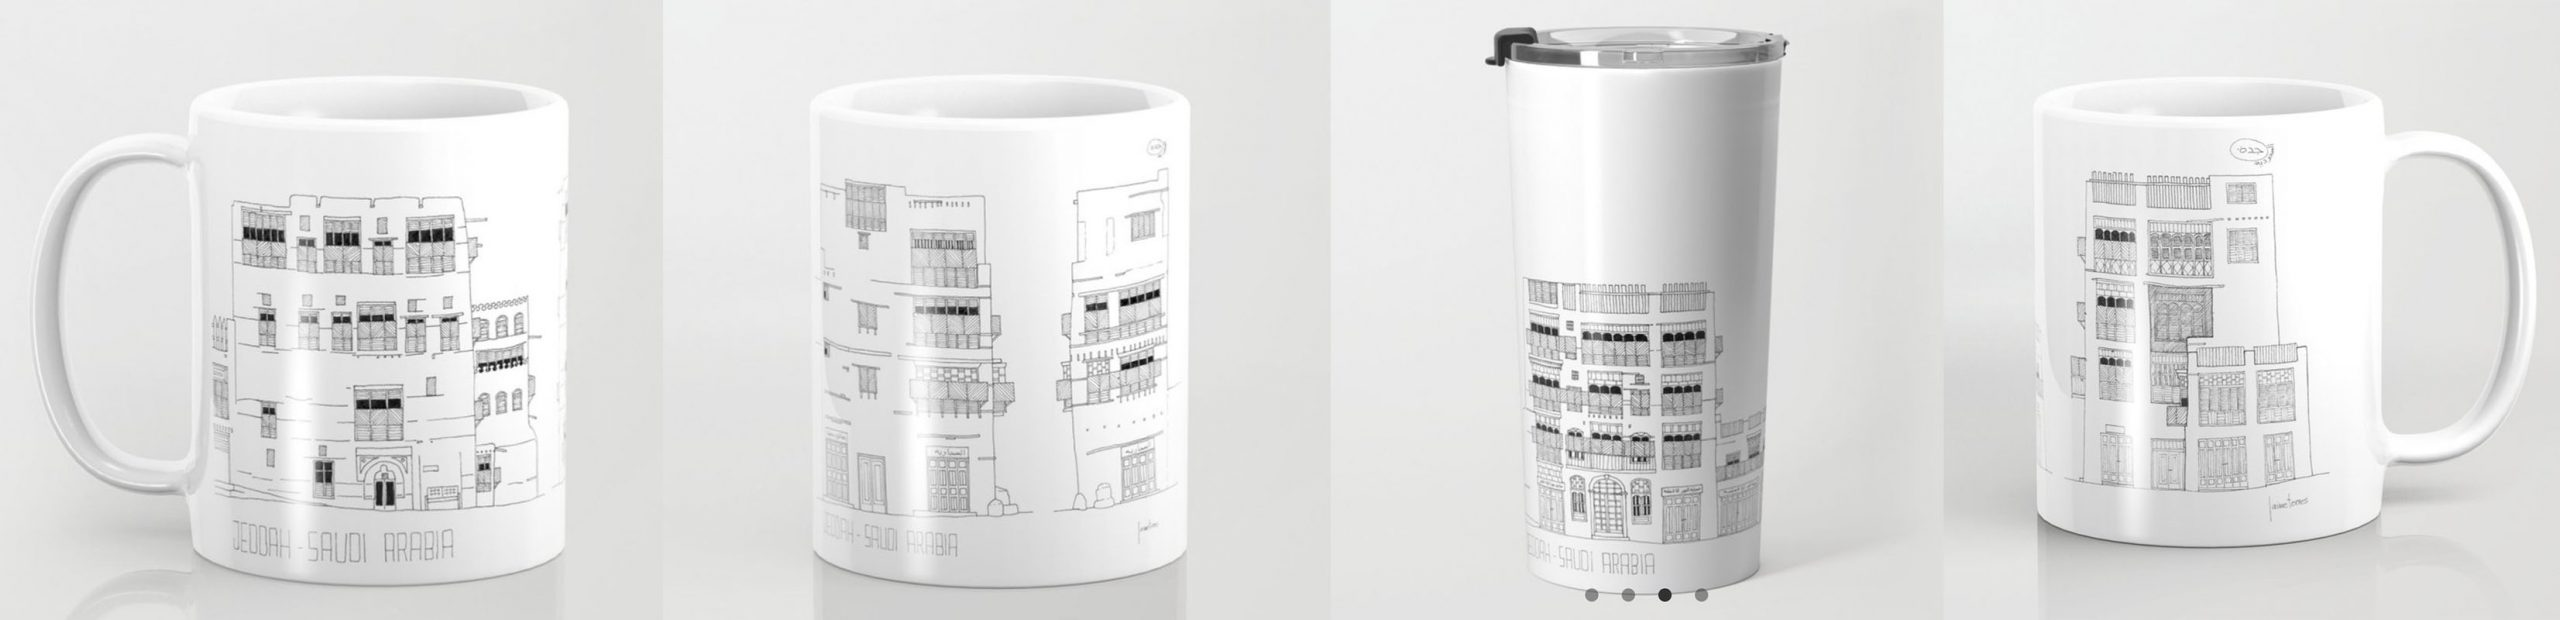 Mug and travel mug with Jeddah AlBalad design Saudi Arabia